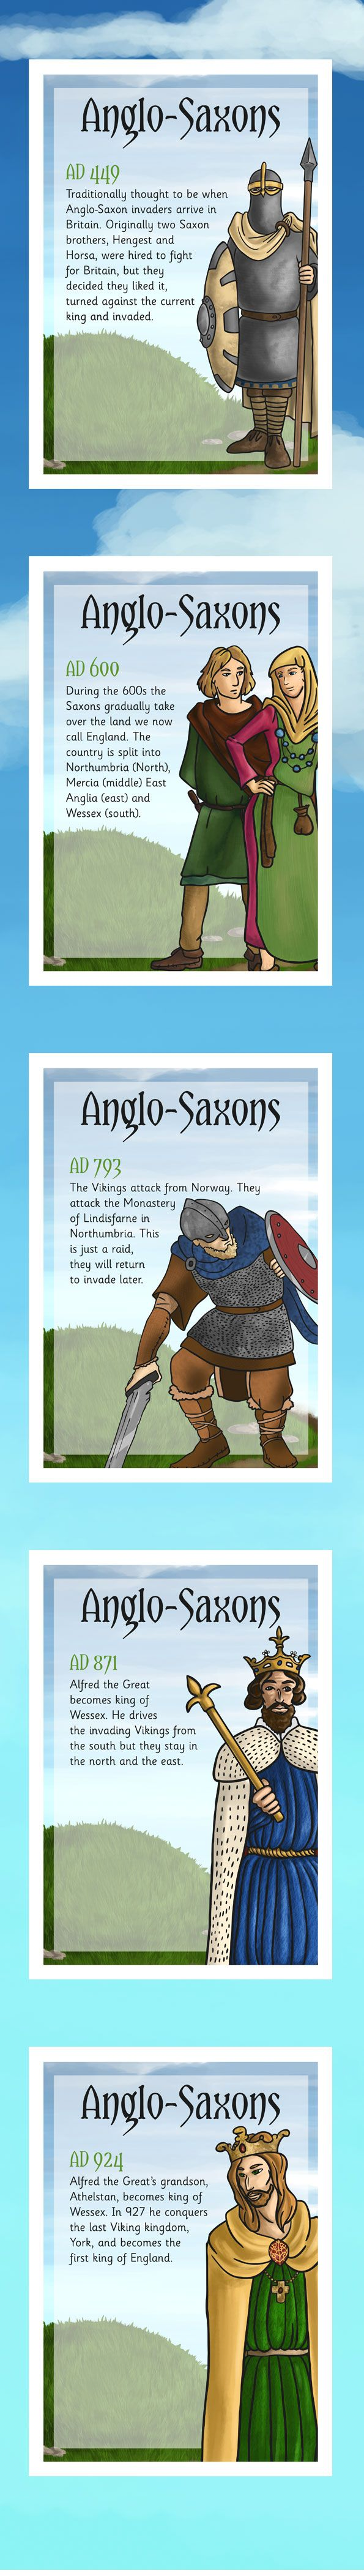 KS2 History Timelines- Anglo Saxons Timeline Posters.